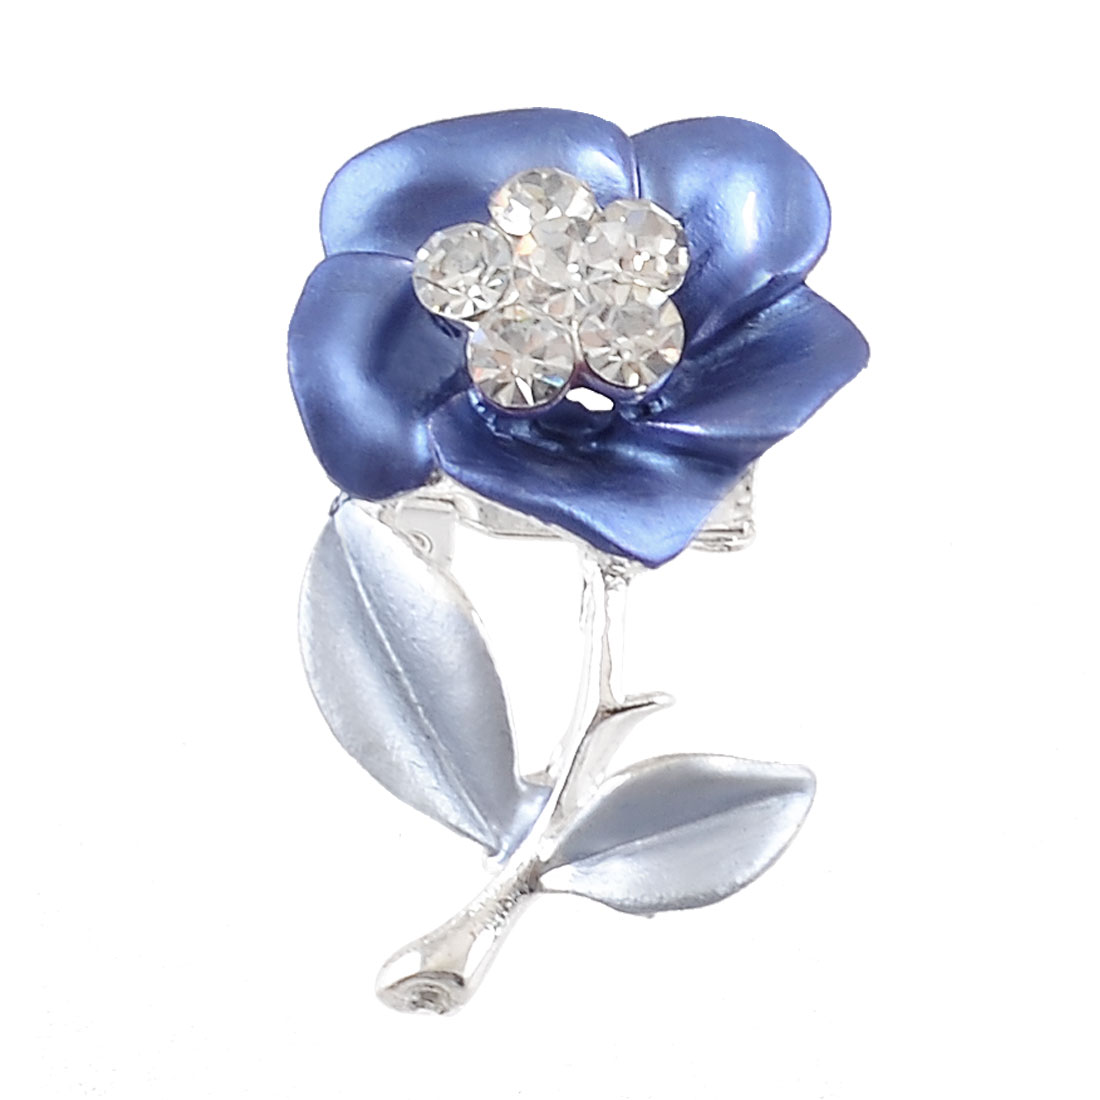 Ladies Glistening Rhinestones Leaves Floral Breast Pin Brooch Blue Silver Tone